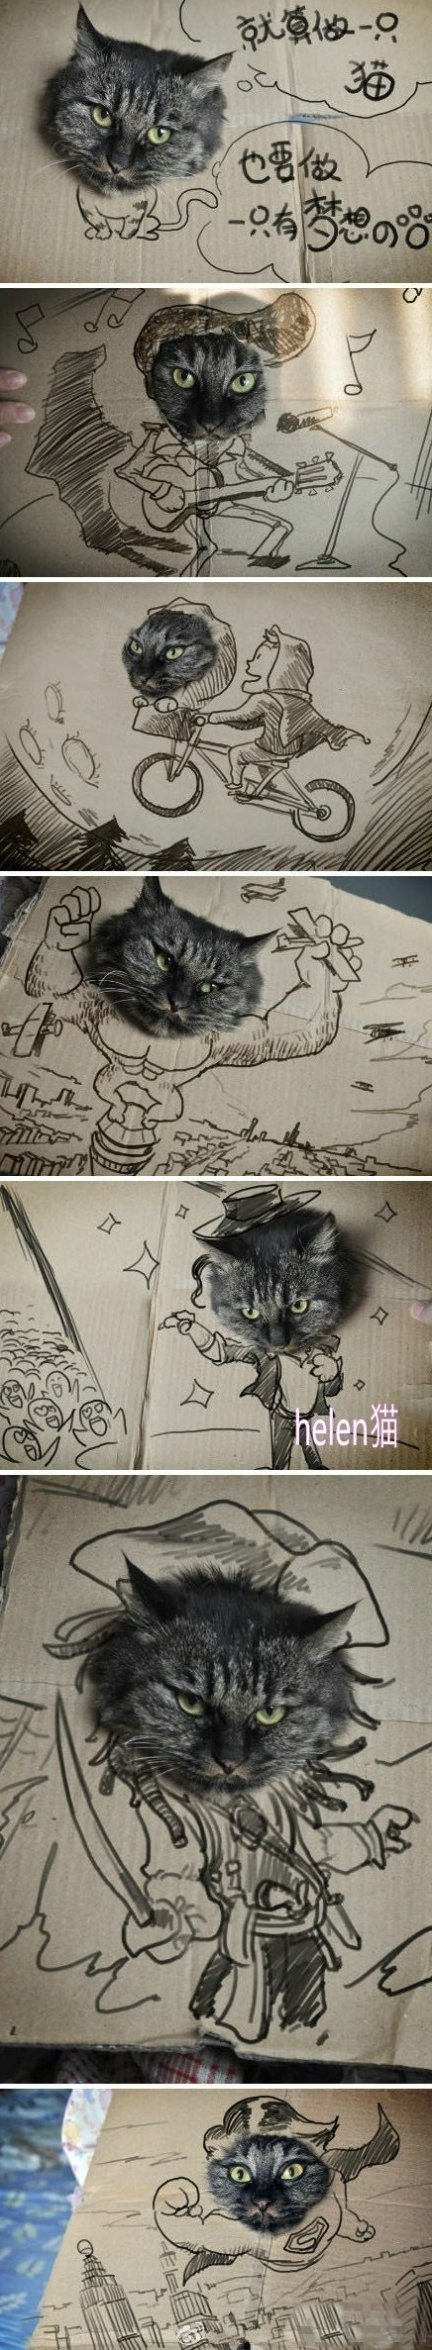 I know what I'm doing next with my cat.